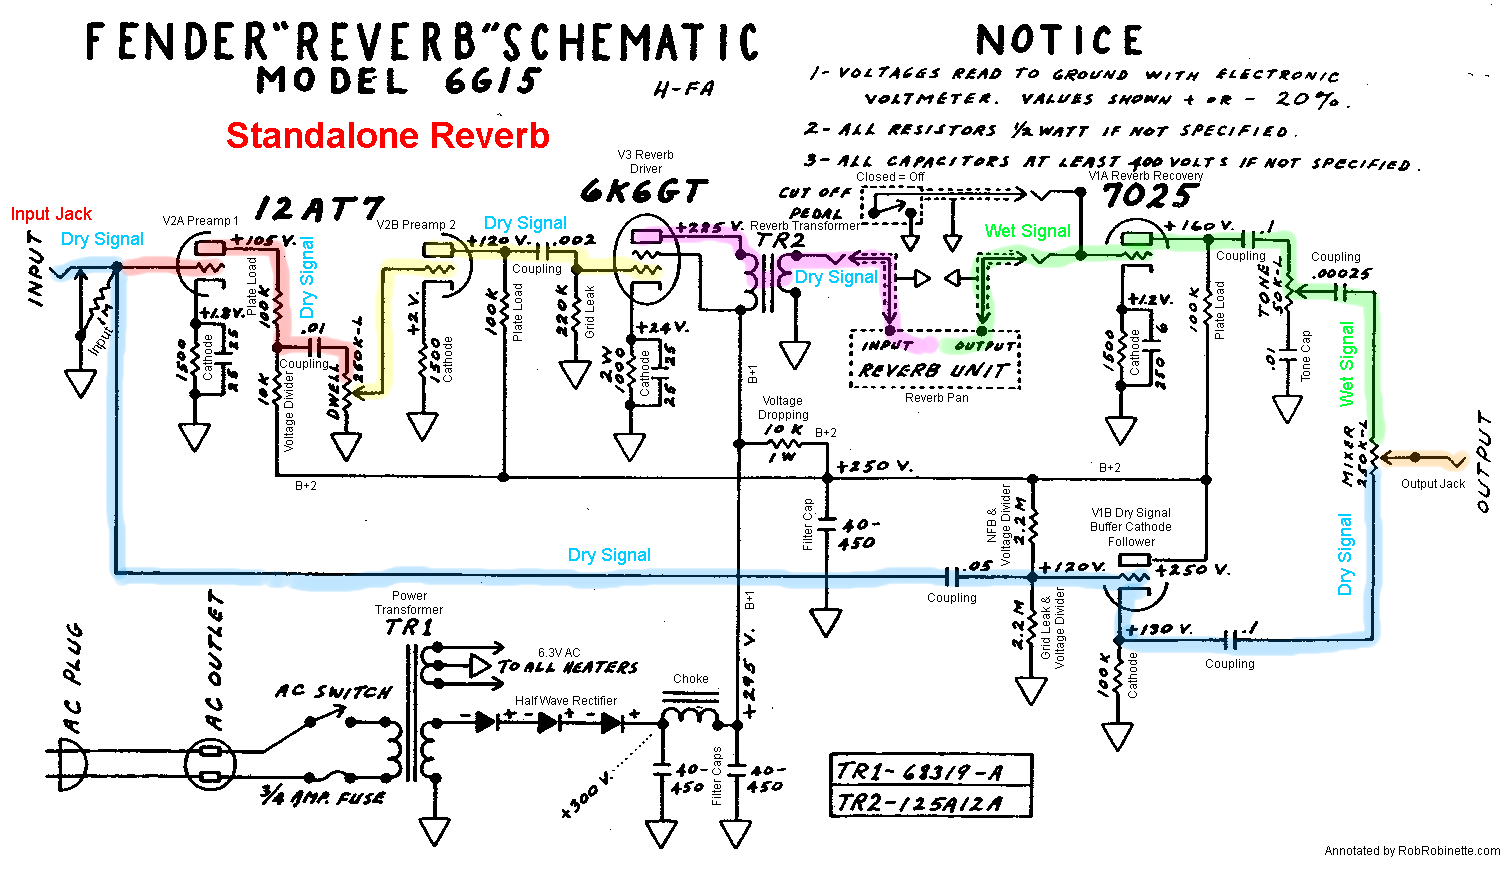 hight resolution of fender 6g15 tube reverb unit schematic with signal flow by robrobinette com